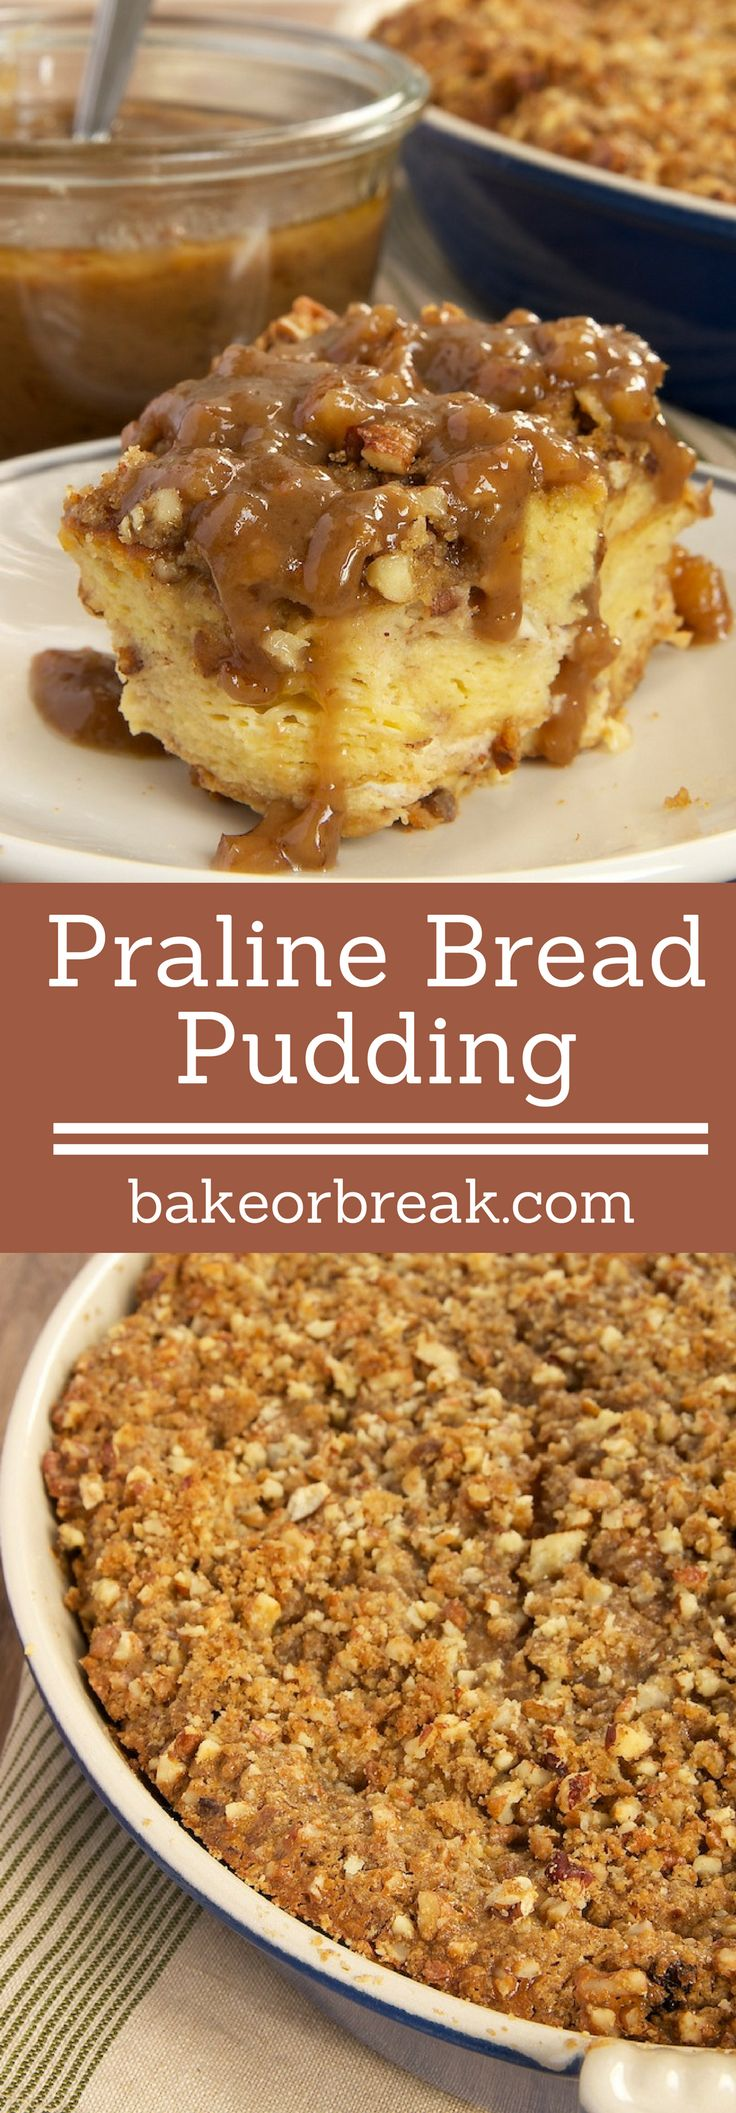 Praline Bread Pudding with Caramel-Pecan Sauce is full of pecans, brown sugar, and a bit of cinnamon. Then, it's topped with a sweet, nutty caramel sauce. Delicious! - Bake or Break ~ http://www.bakeorbreak.com